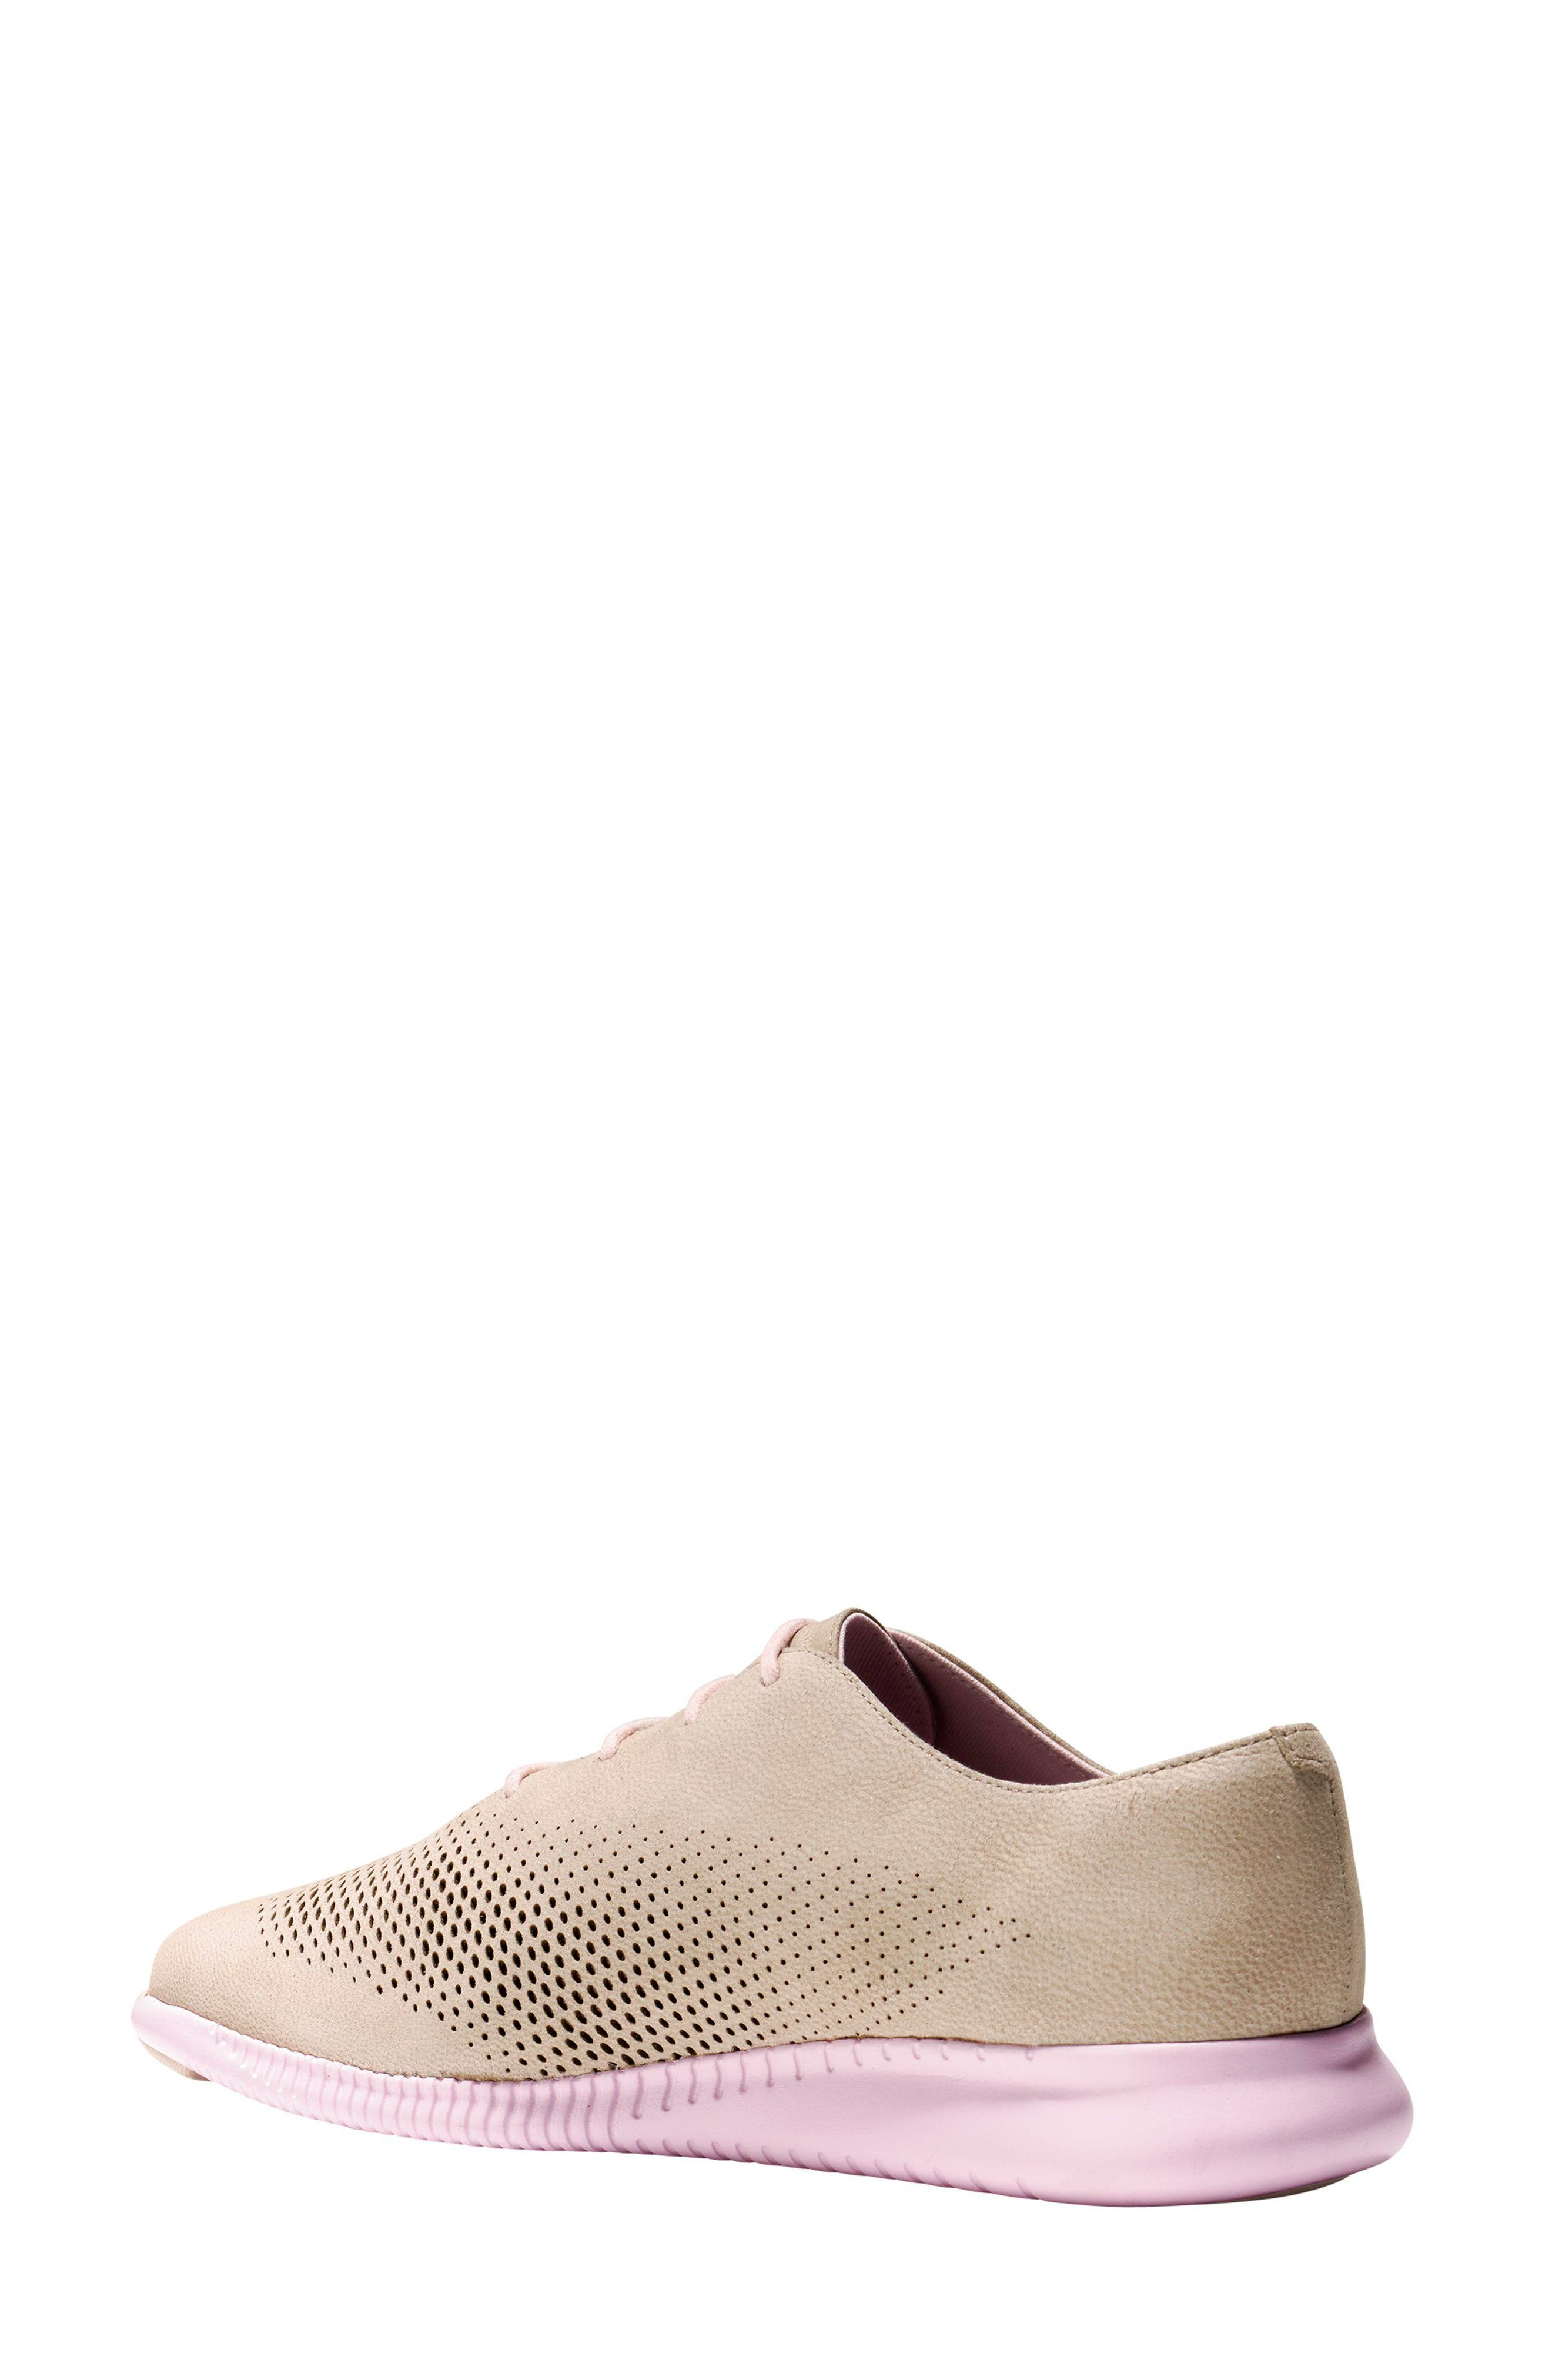 'ZeroGrand' Perforated Wingtip,                             Alternate thumbnail 2, color,                             Barley/ Pale Lilac Nubuck